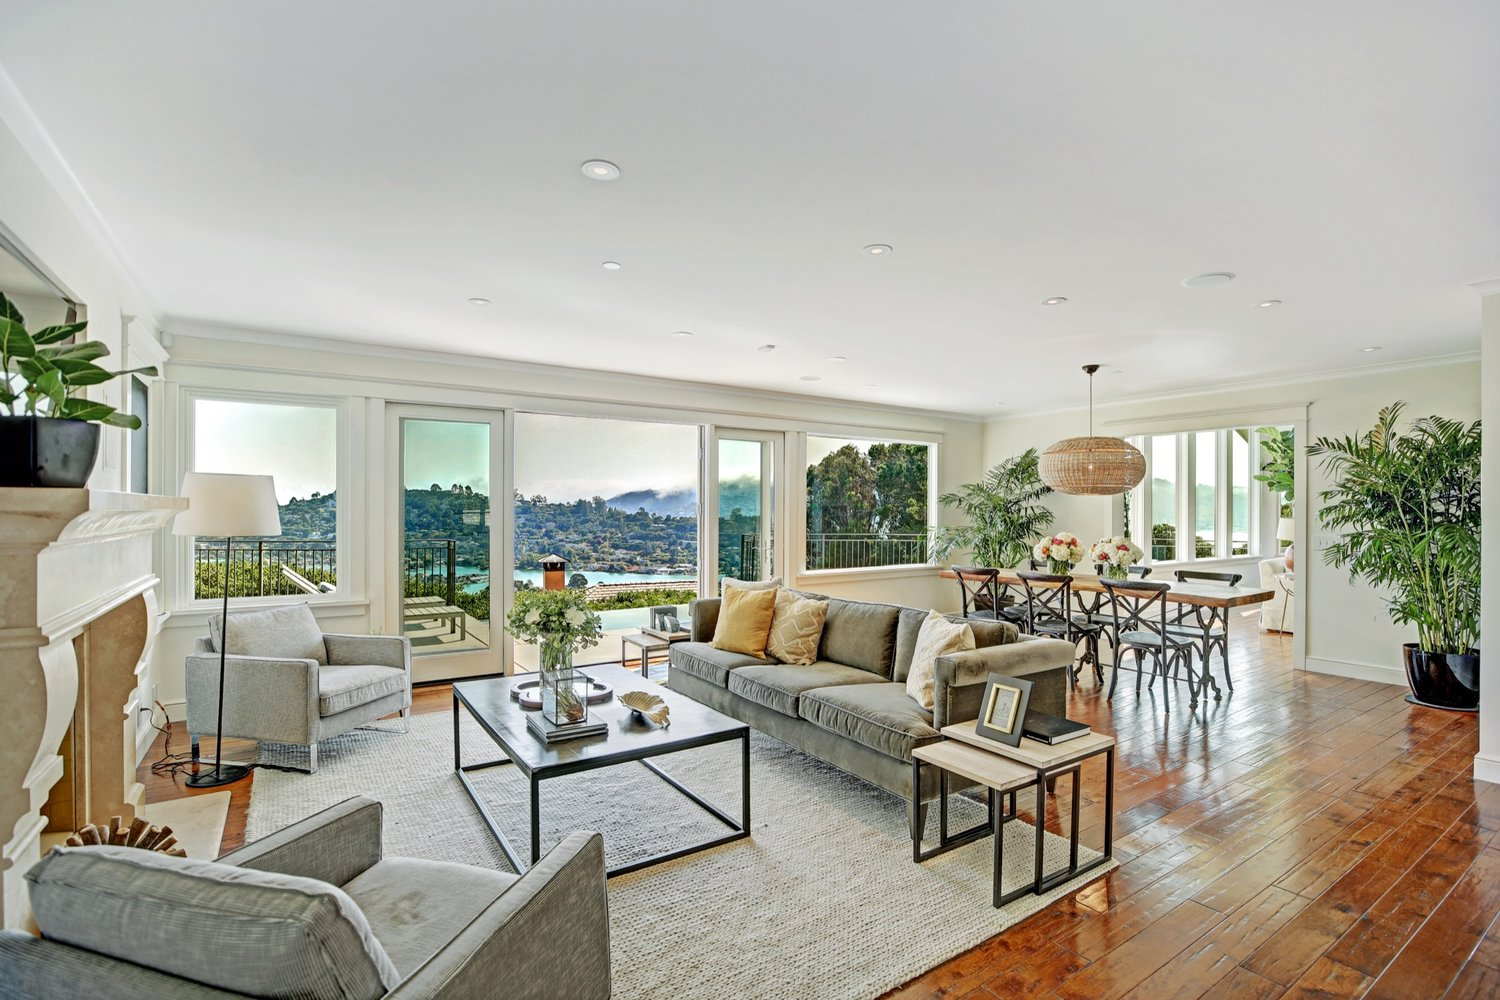 35 Rolling Hills Road, Tiburon | Listed by Barr Haney + Whitney ...